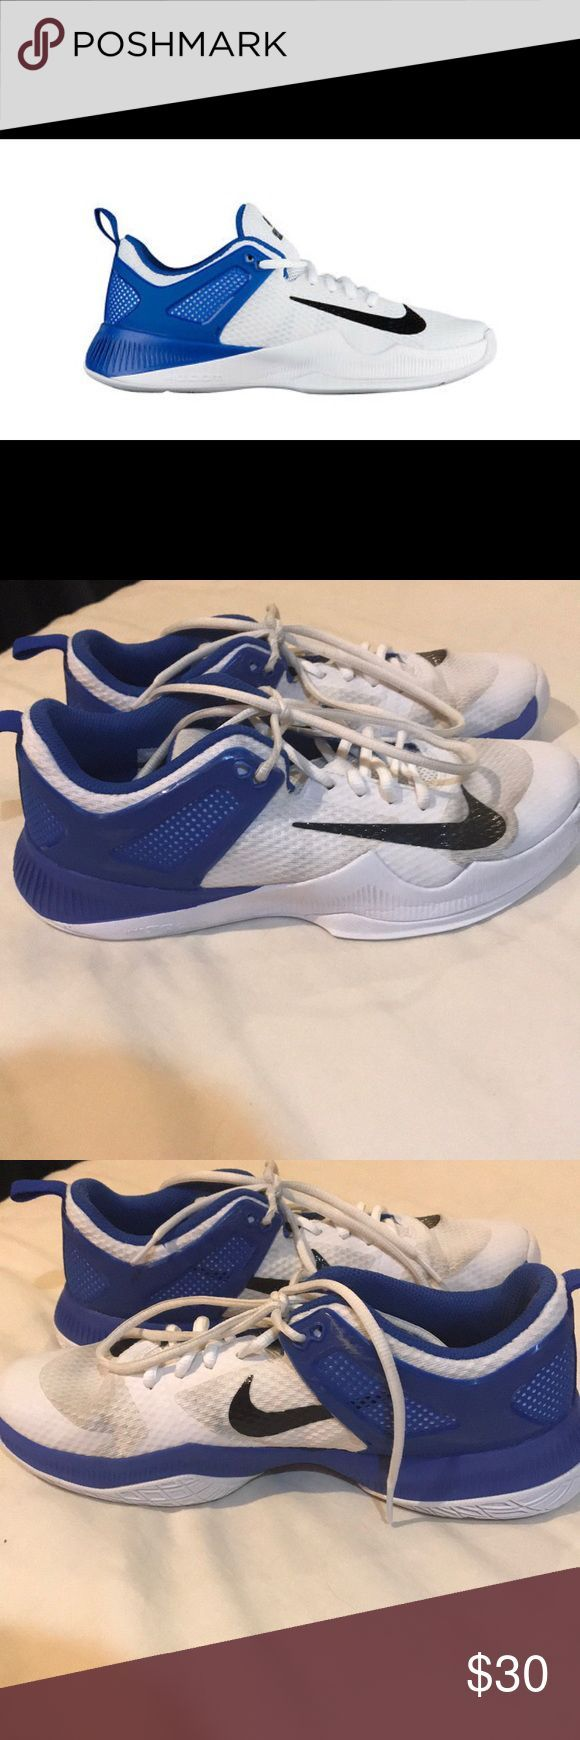 Nike Volleyball Shoes Blue And White Worn Cracked On Bottom Nike Shoes Athletic Fashionaccessories Fas Volleyball Shoes Nike Volleyball Shoes Nike Volleyball